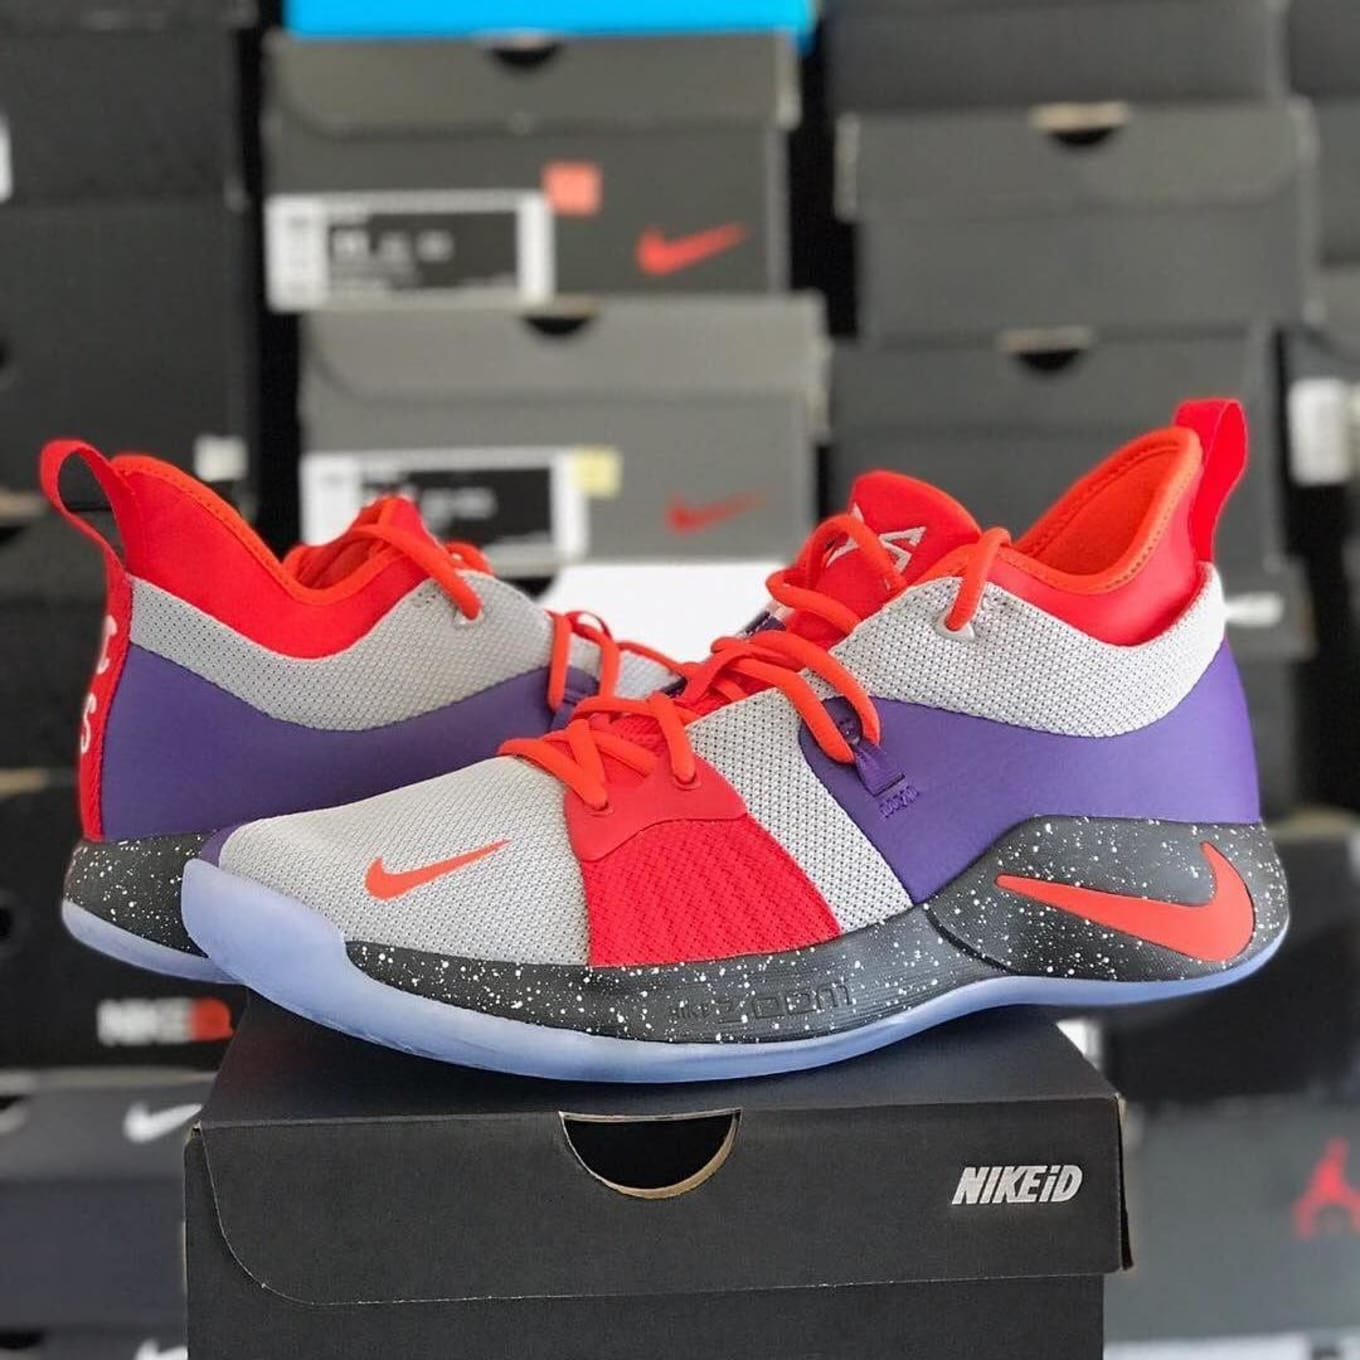 newest 1e8a9 6442b NIKEiD PG 2 Designs | Sole Collector